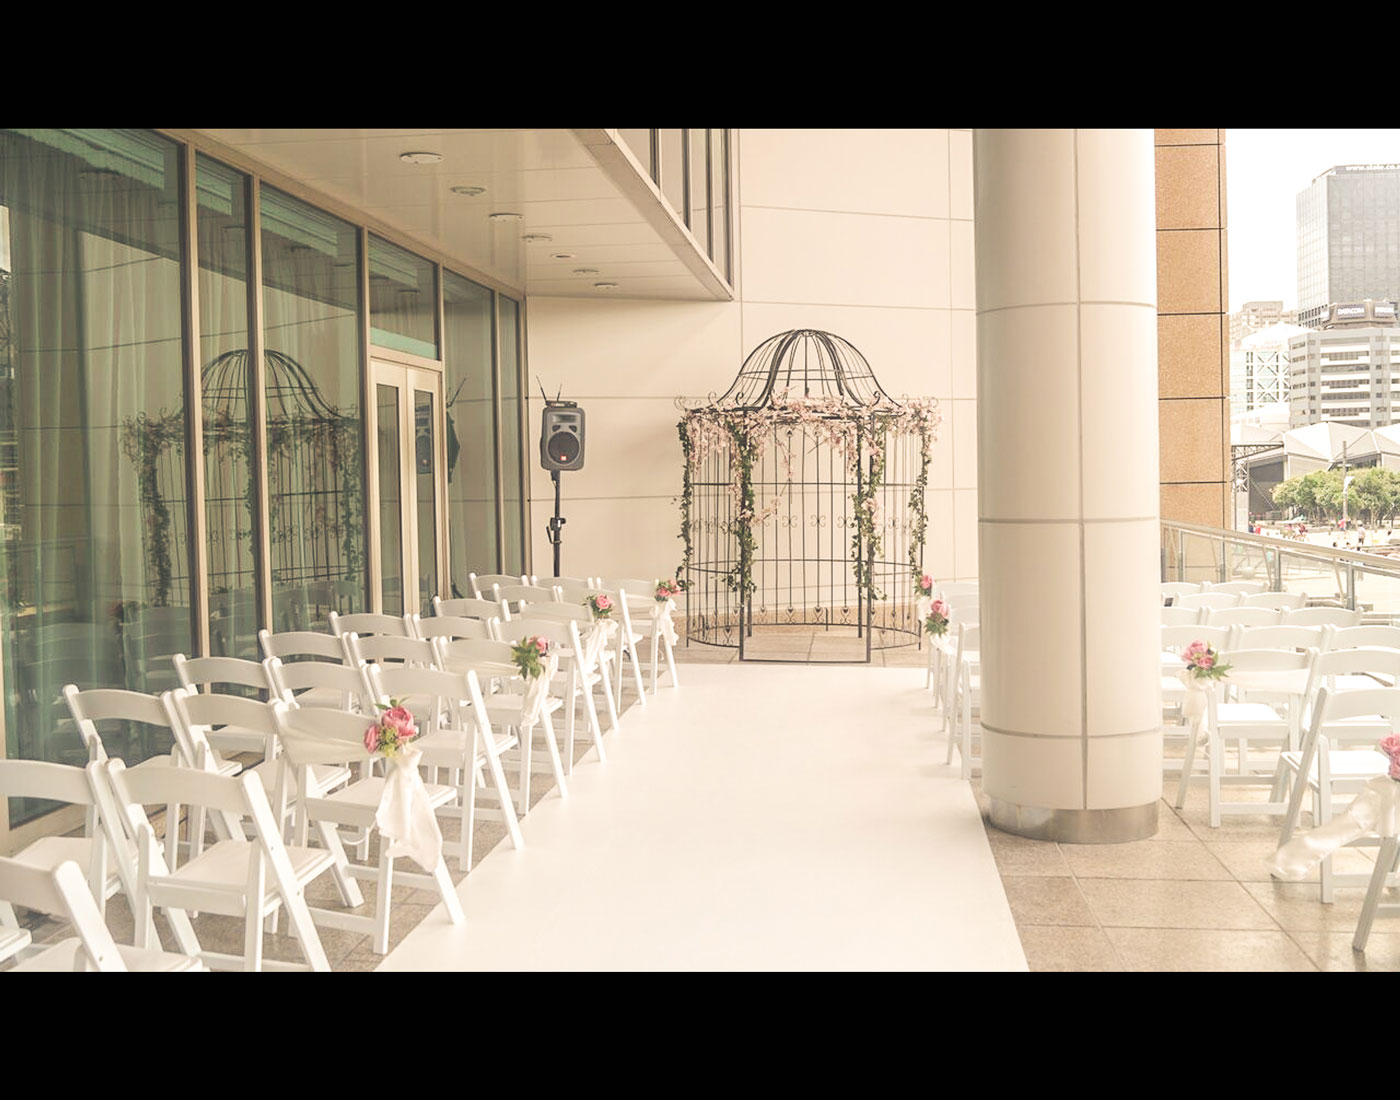 A balcony wedding set up for ceremony